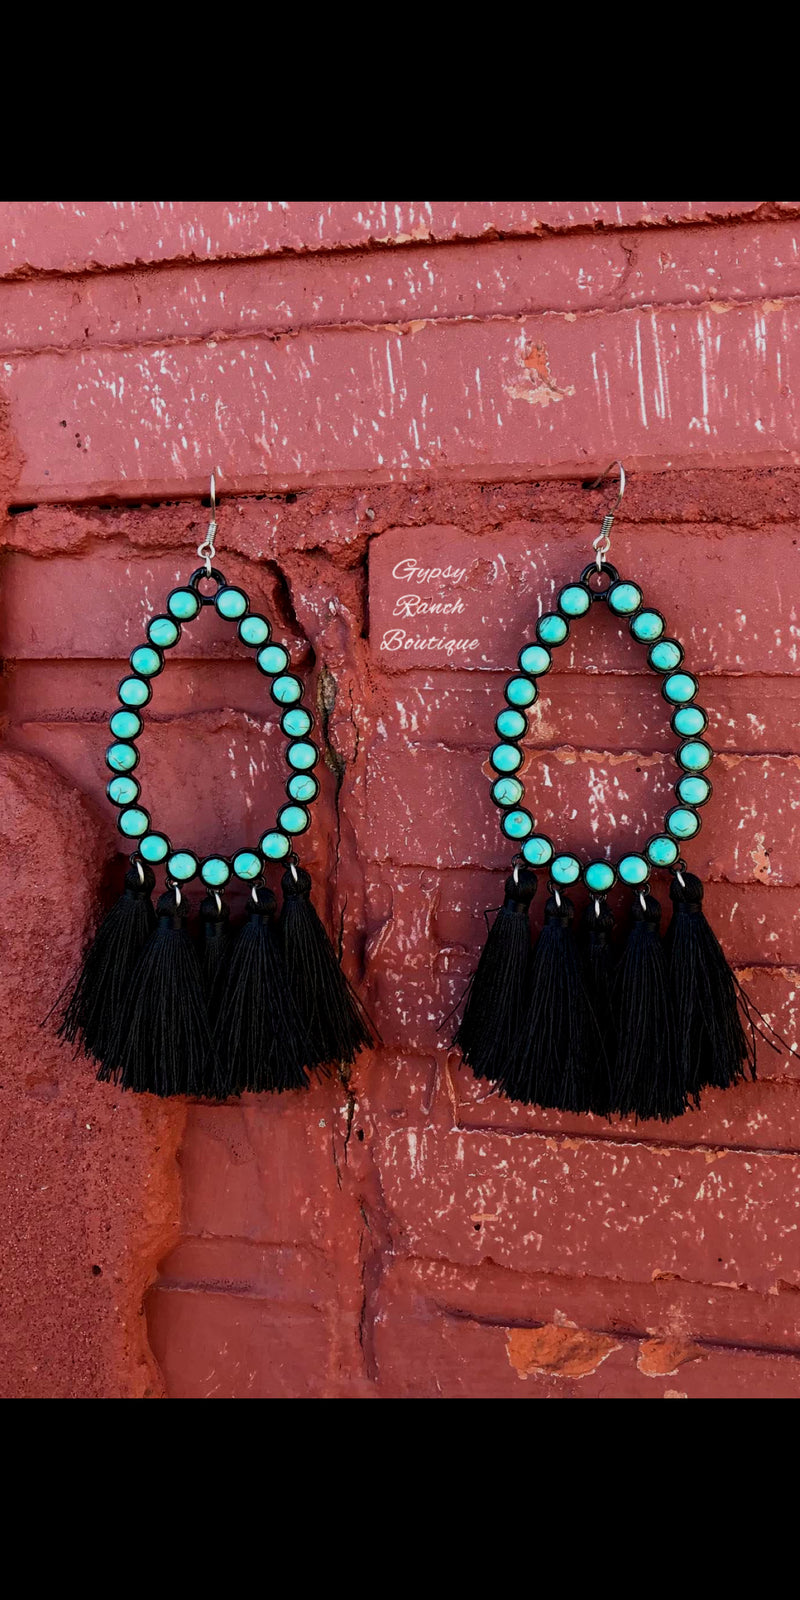 Rio Bravo Black & Turquoise Earrings